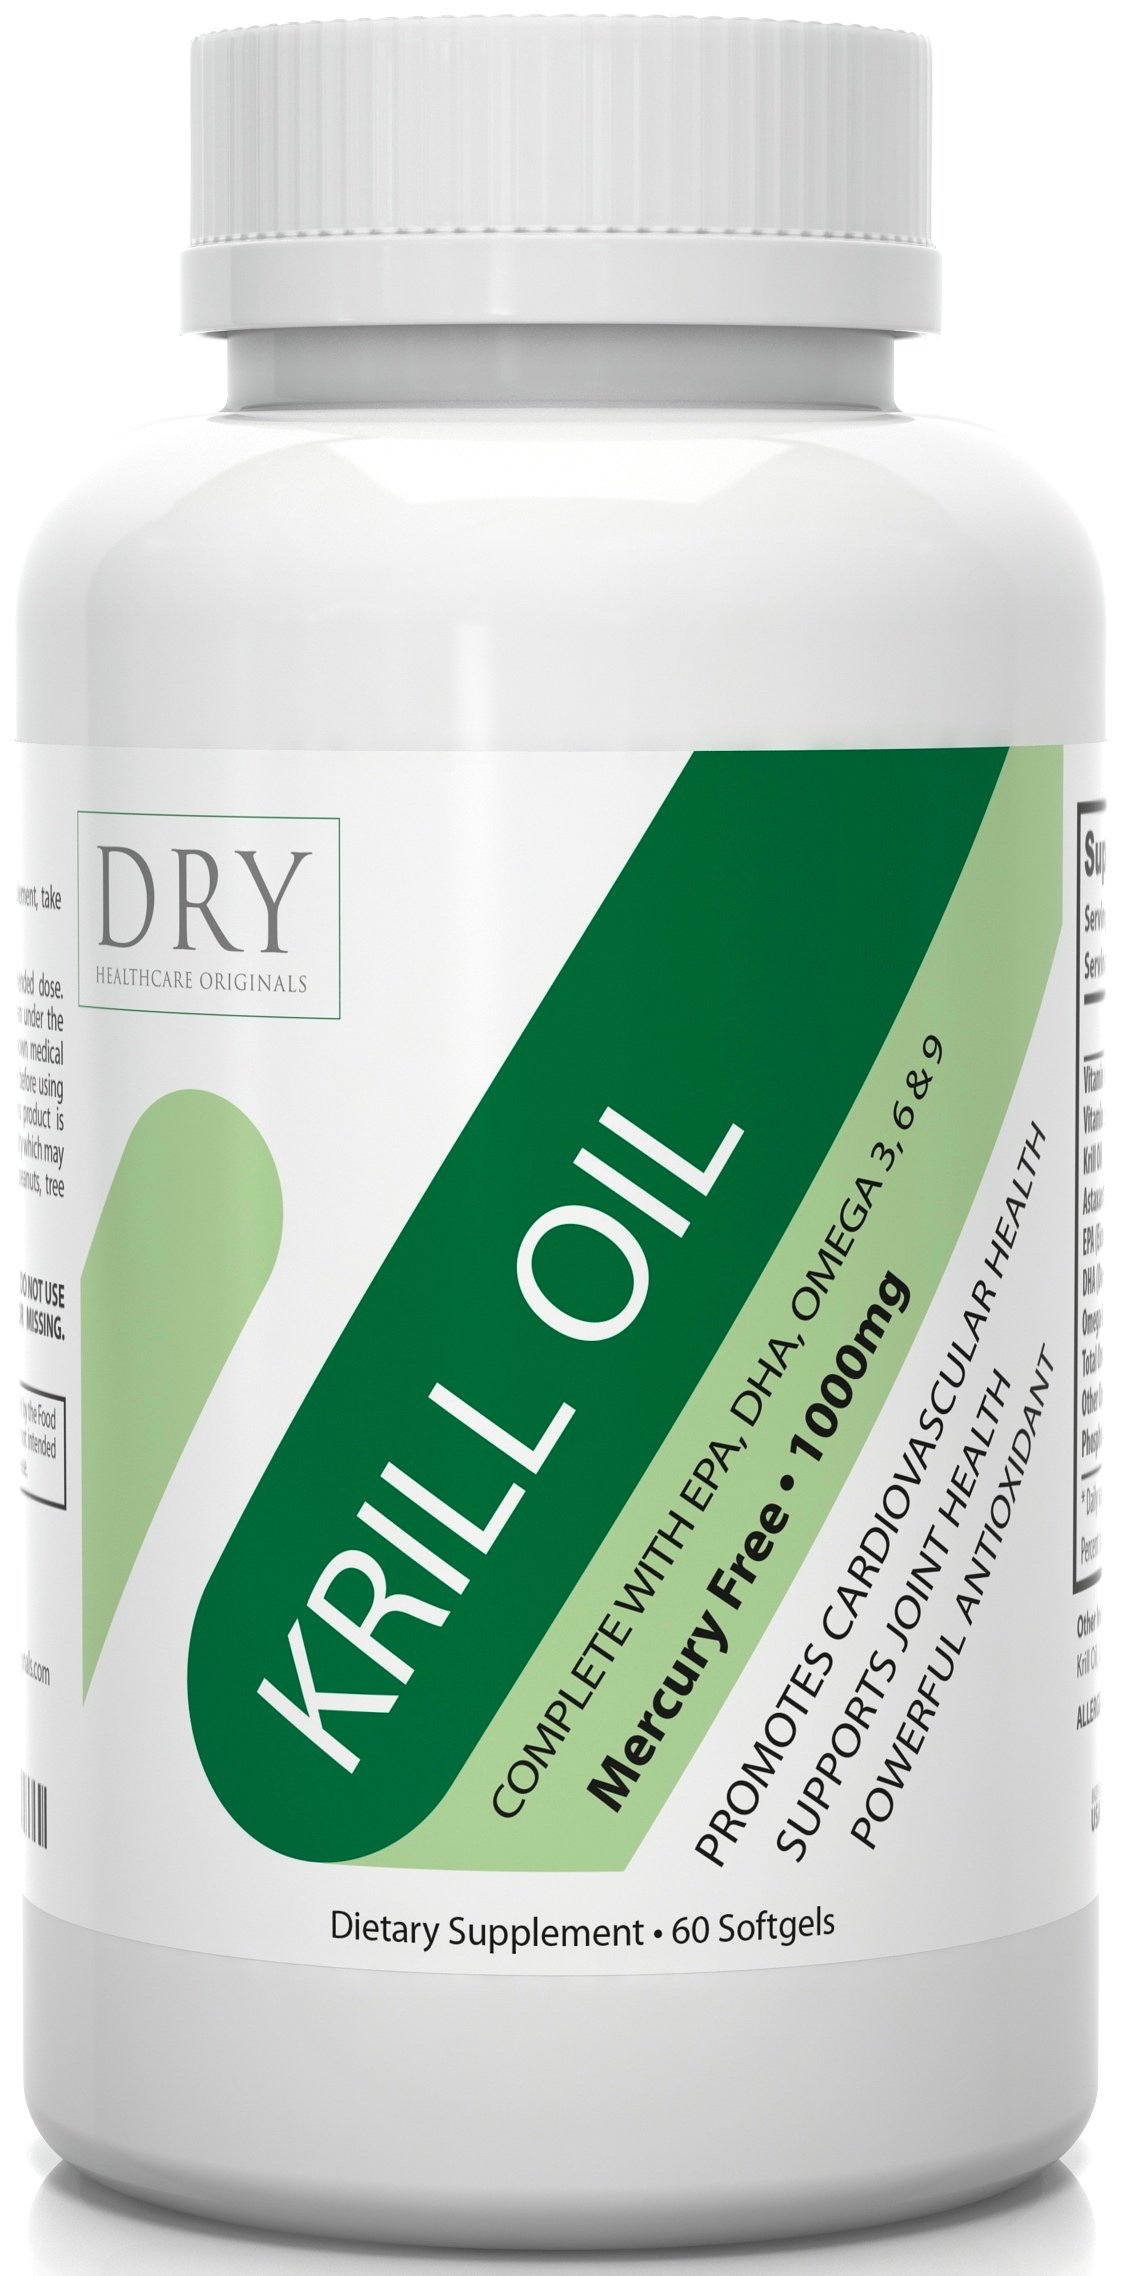 #1 Premium Krill Oil 1000mg - Pure EPA DHA Supplement - Omega 3 6 9 & Astaxanthin Antioxidant - Boost Heart Health, Joint Care, Regulate Blood Pressure & Wellbeing - Lifetime Guarantee